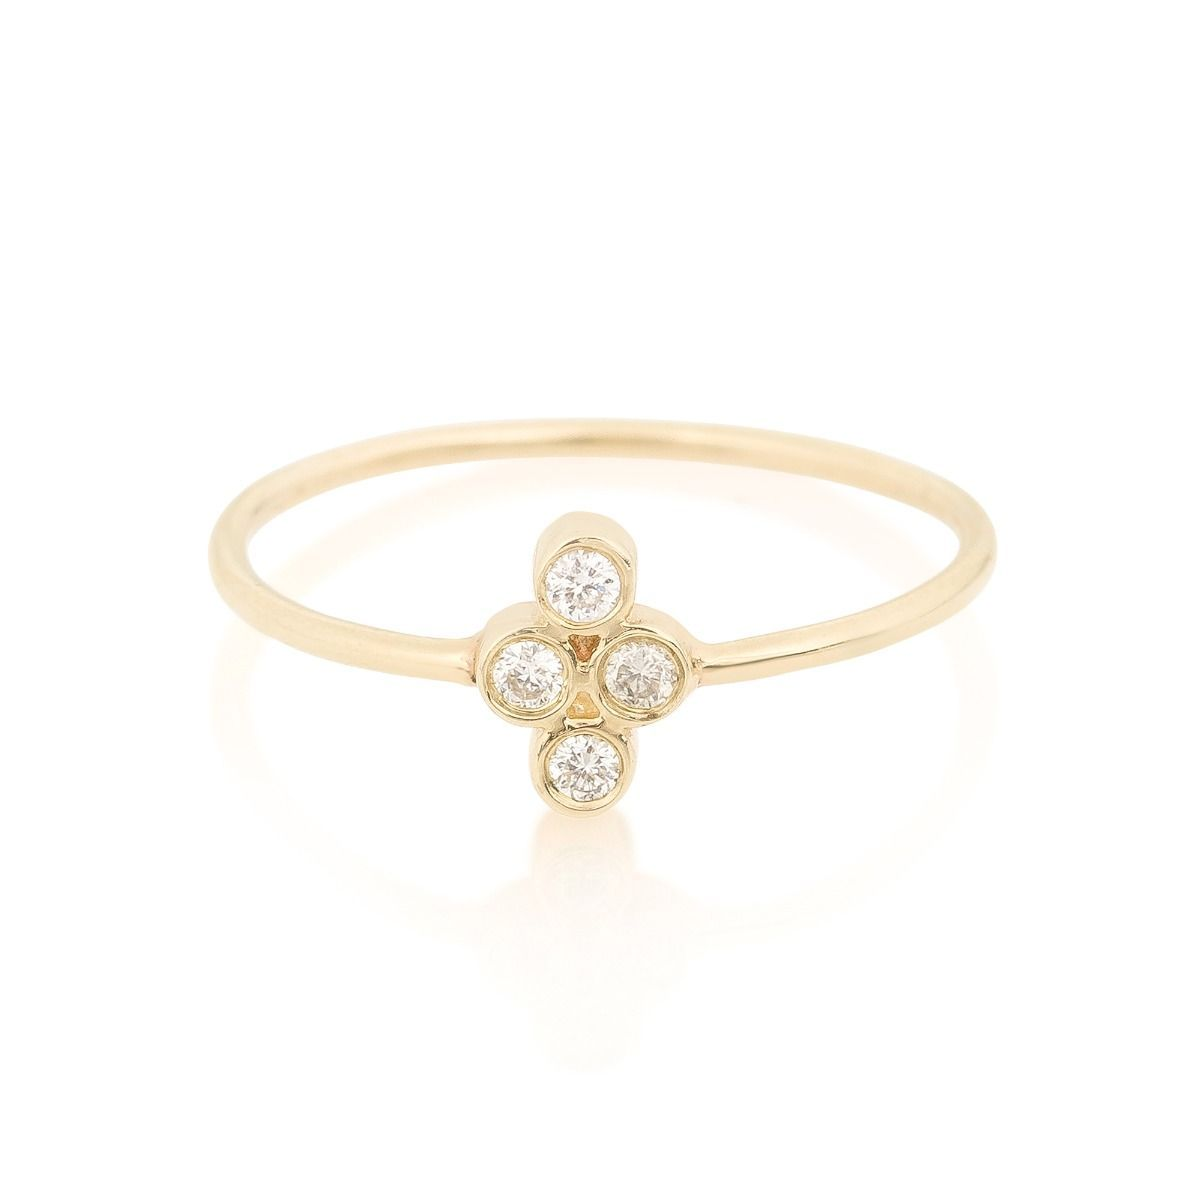 Zoë Chicco 14K Gold Diamond Quad Ring c802mgE